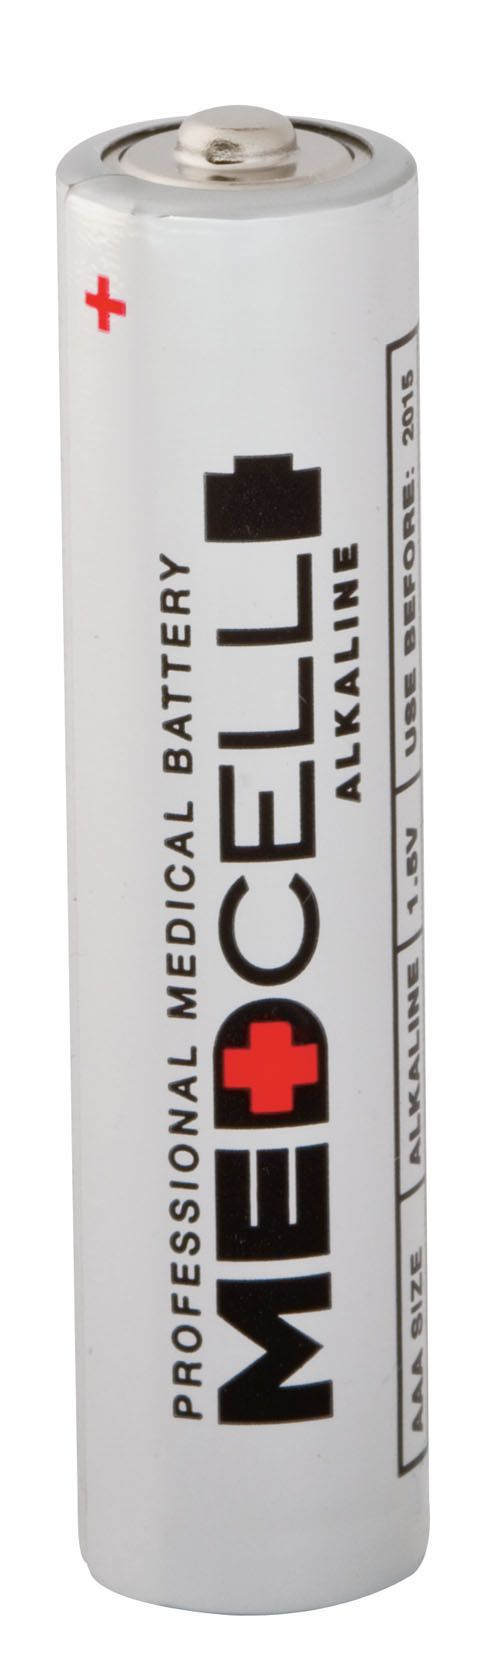 Medline MedCell Alkaline Battery - Battery, 1.5V, Aaa, Box of 24 - Model MPHBAAA